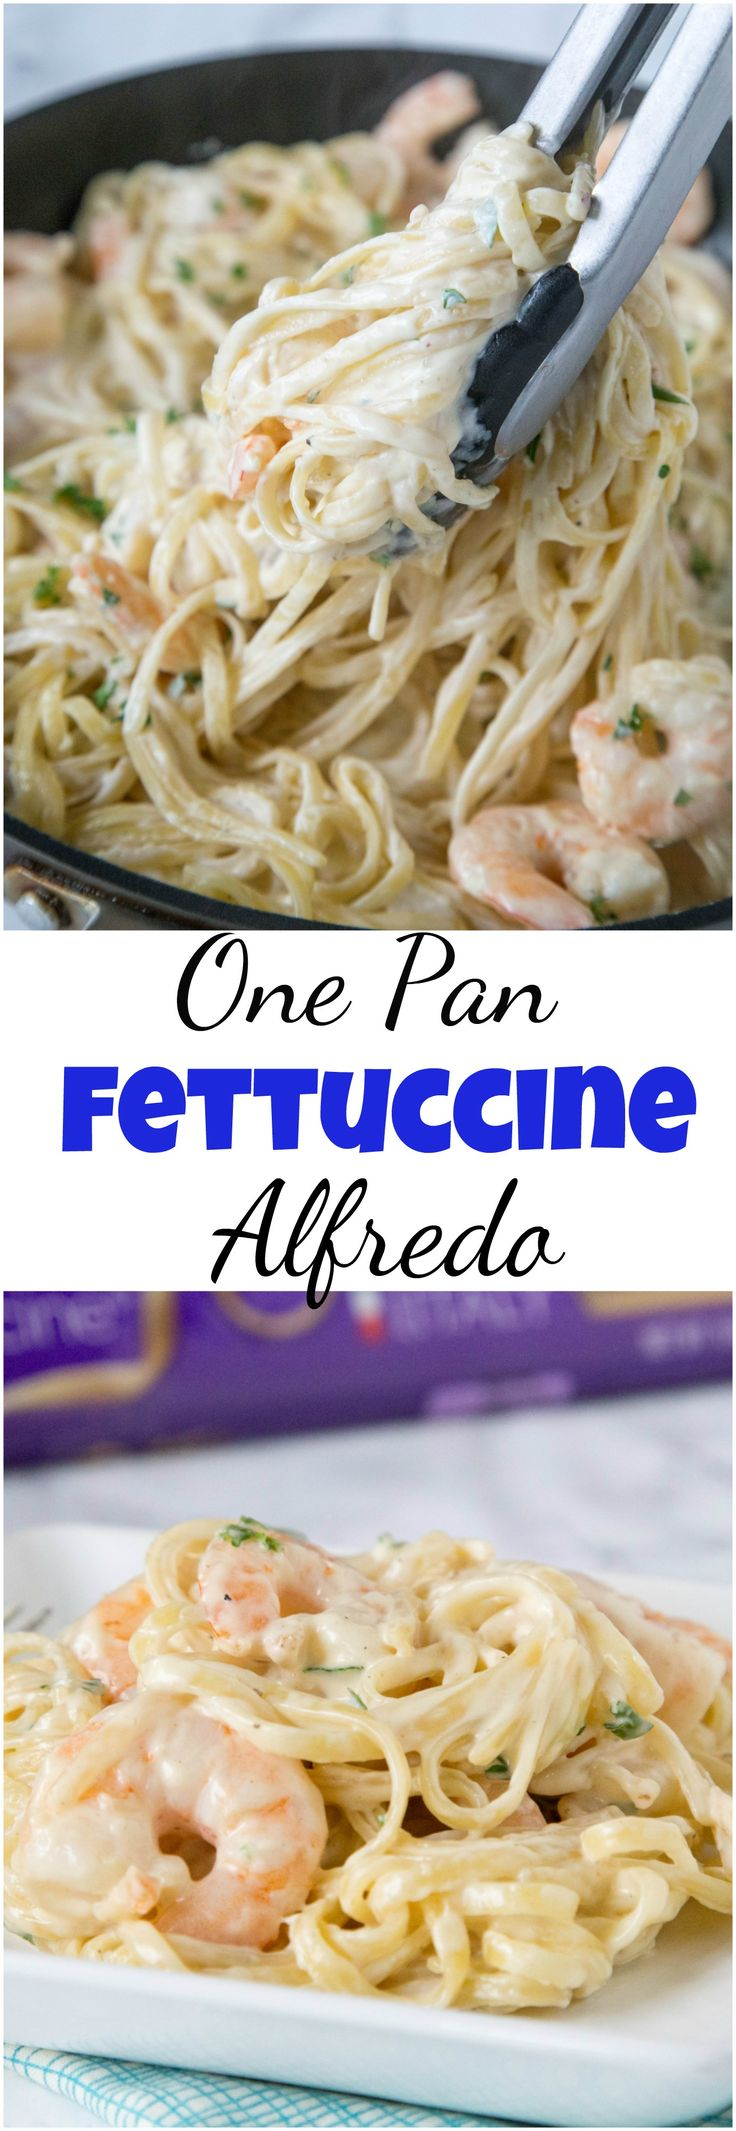 One Pan Fettuccine Alfredo with Shrimp - a simple fettuccine Alfredo recipe made in one pan. Add shrimp to have a romantic and easy meal you can enjoy any night of the week.